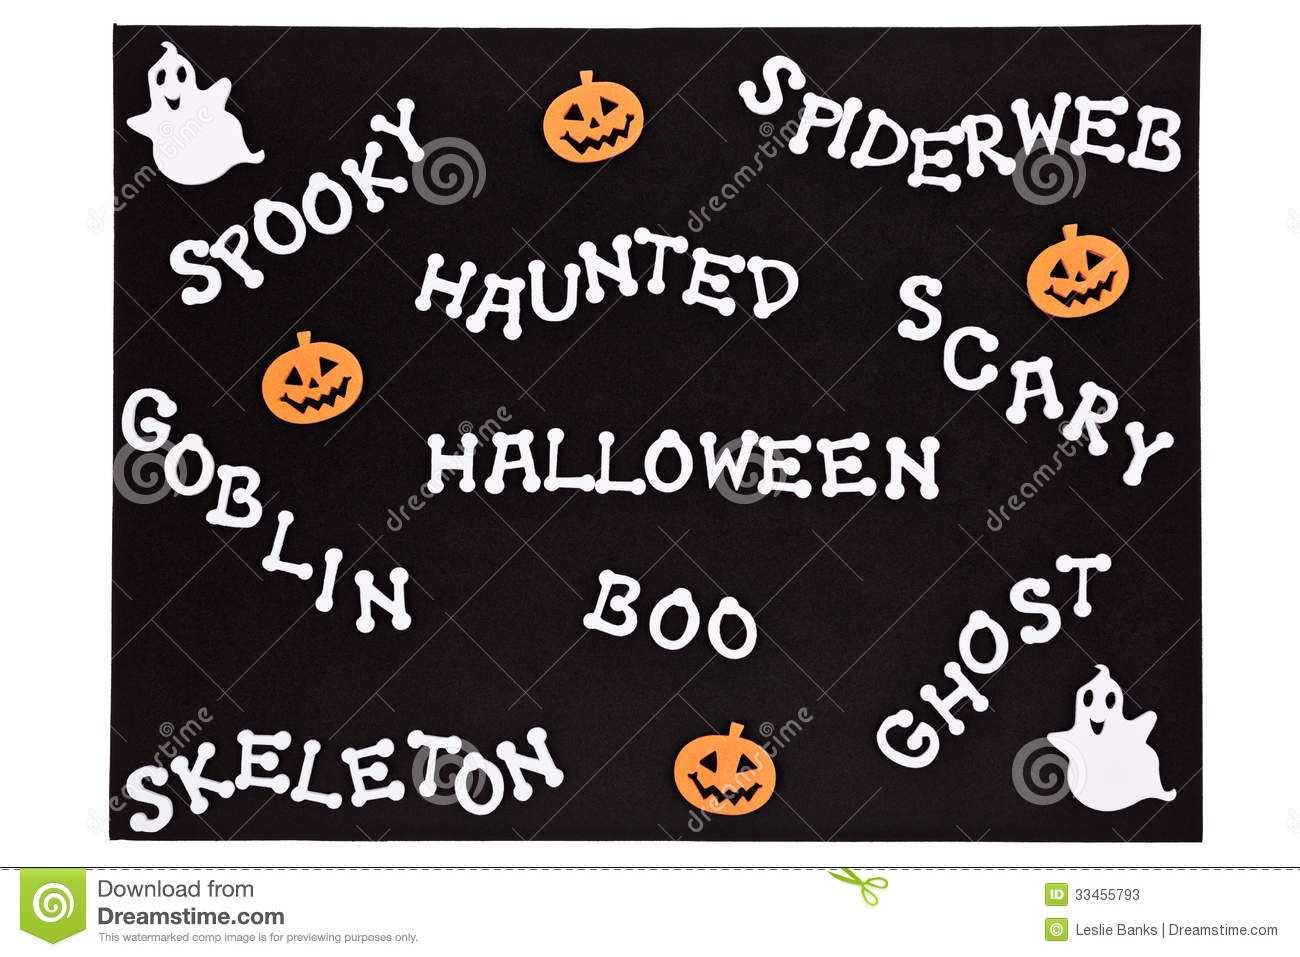 Halloween Words On A Black Mat Stock Photos  Image 334557 ~ 010317_Halloween Doormat With Sound